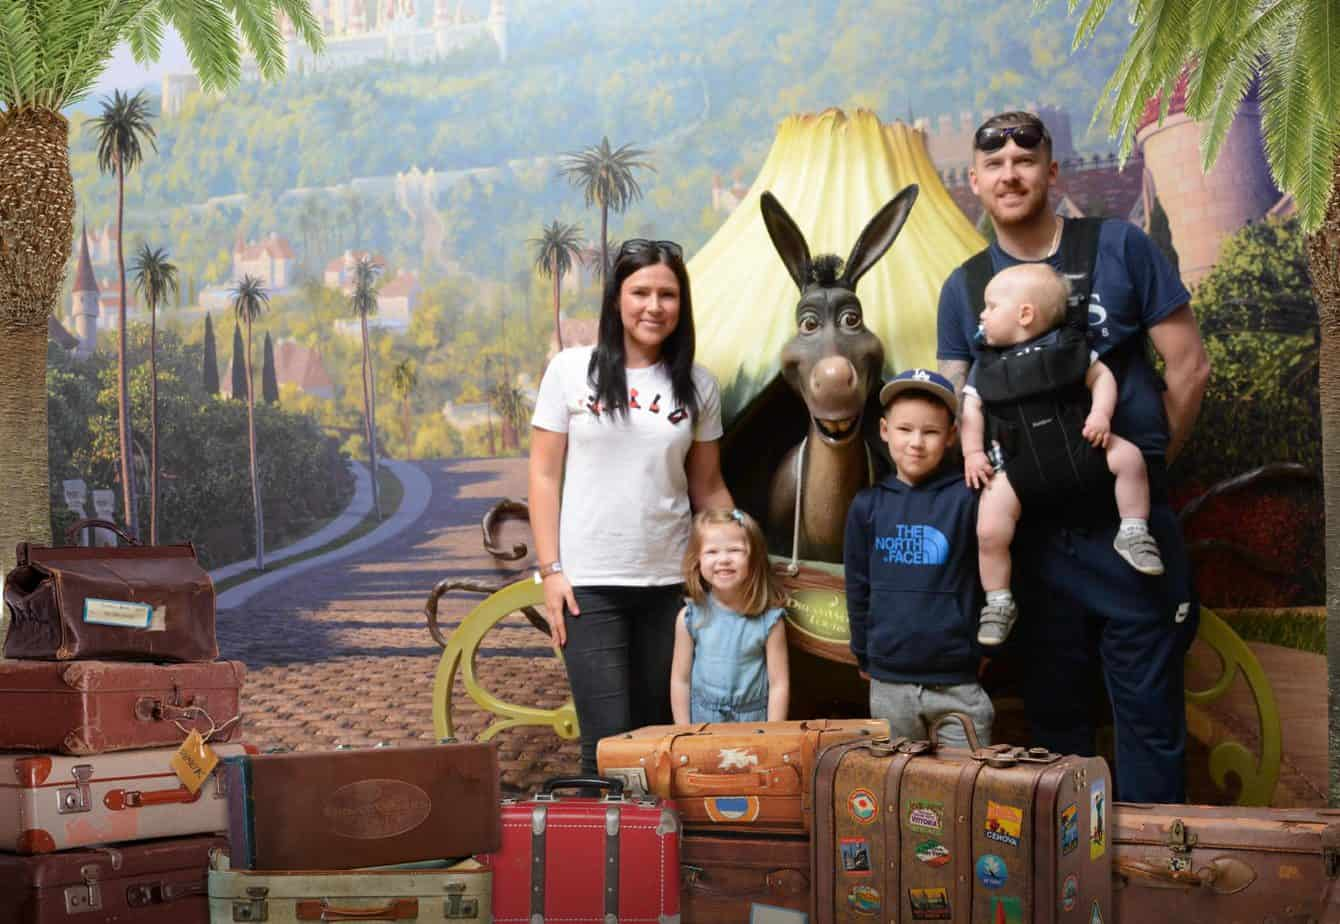 A photo of us 5 with Donkey a Shrek's Adventure